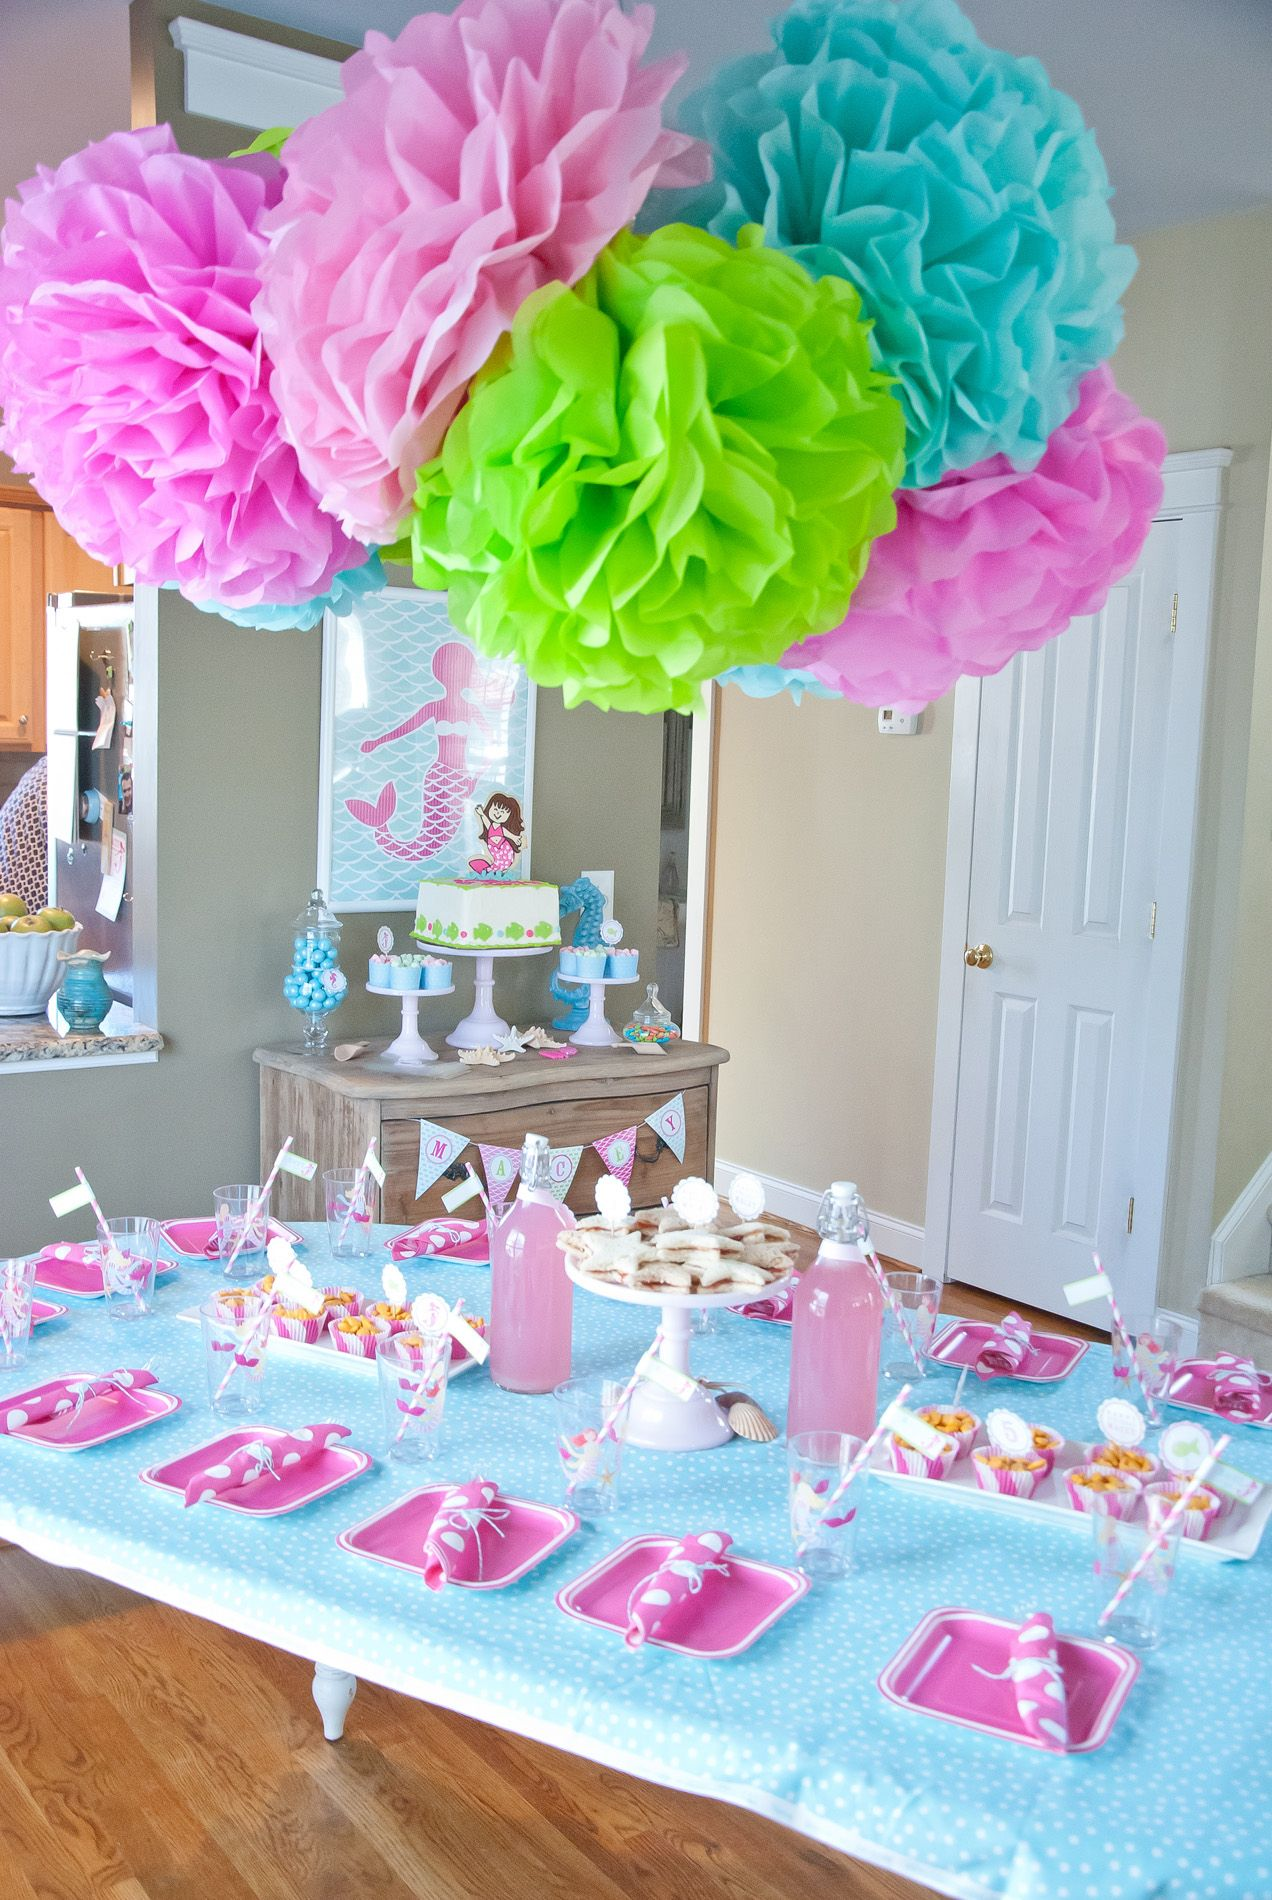 Attrayant Mermaid Birthday Party Table 1,272×1,900 Pixels